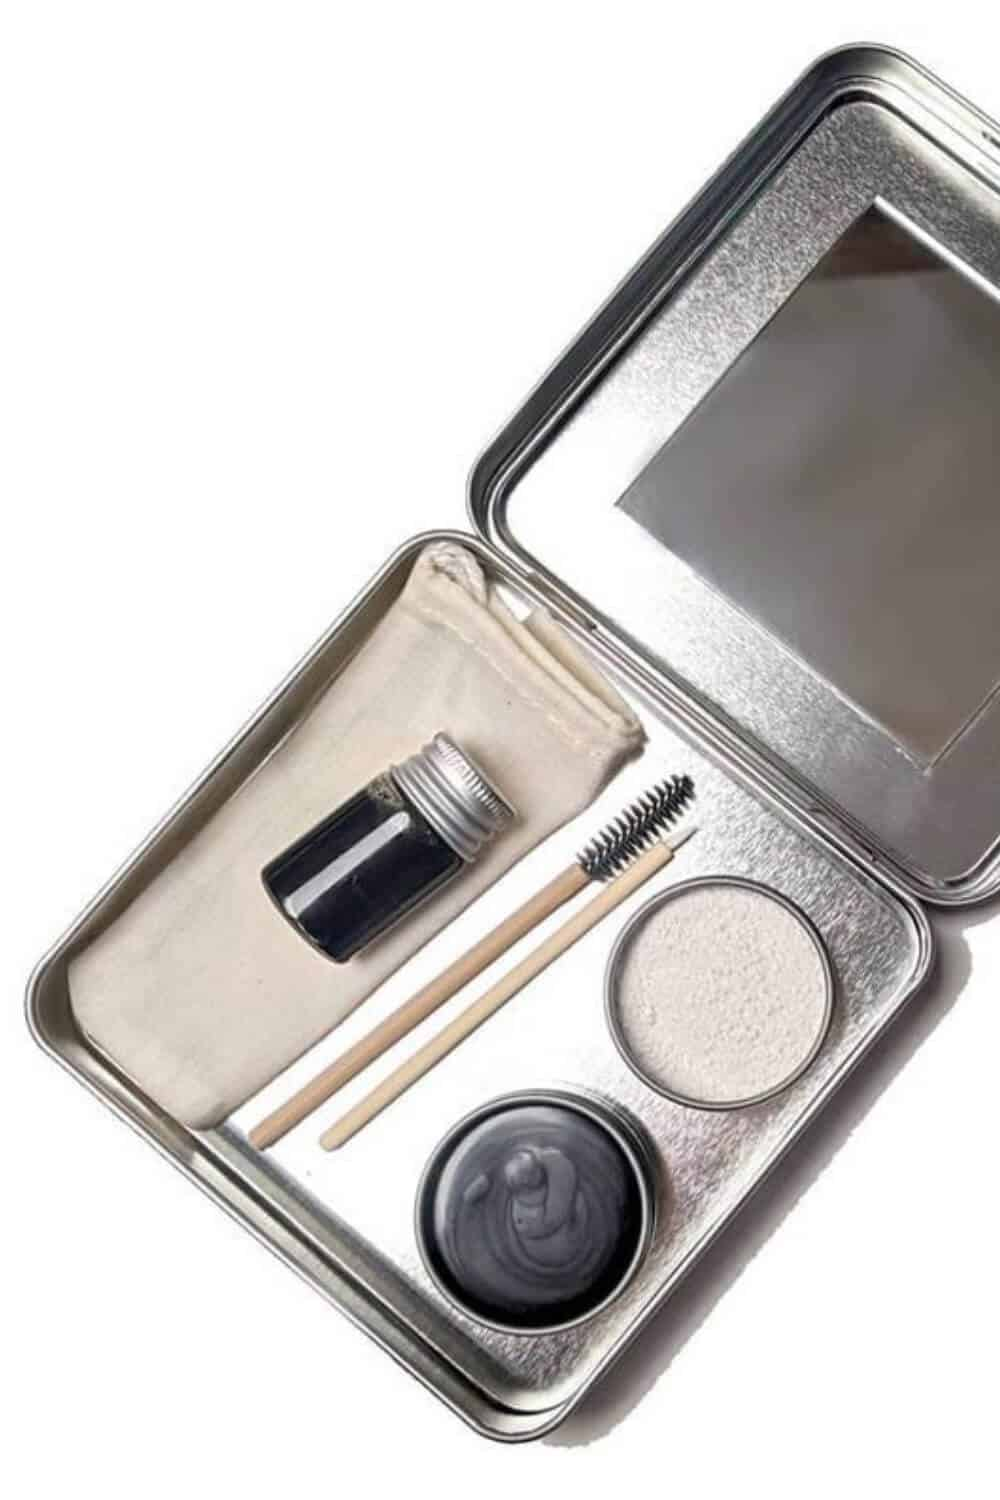 Finding zero waste makeup alternatives is no easy feat, because traditional containers are difficult (at best) to recycle, being often comprised of composite materials and components Image by Clean Faced Cosmetics #zerowastemakeup